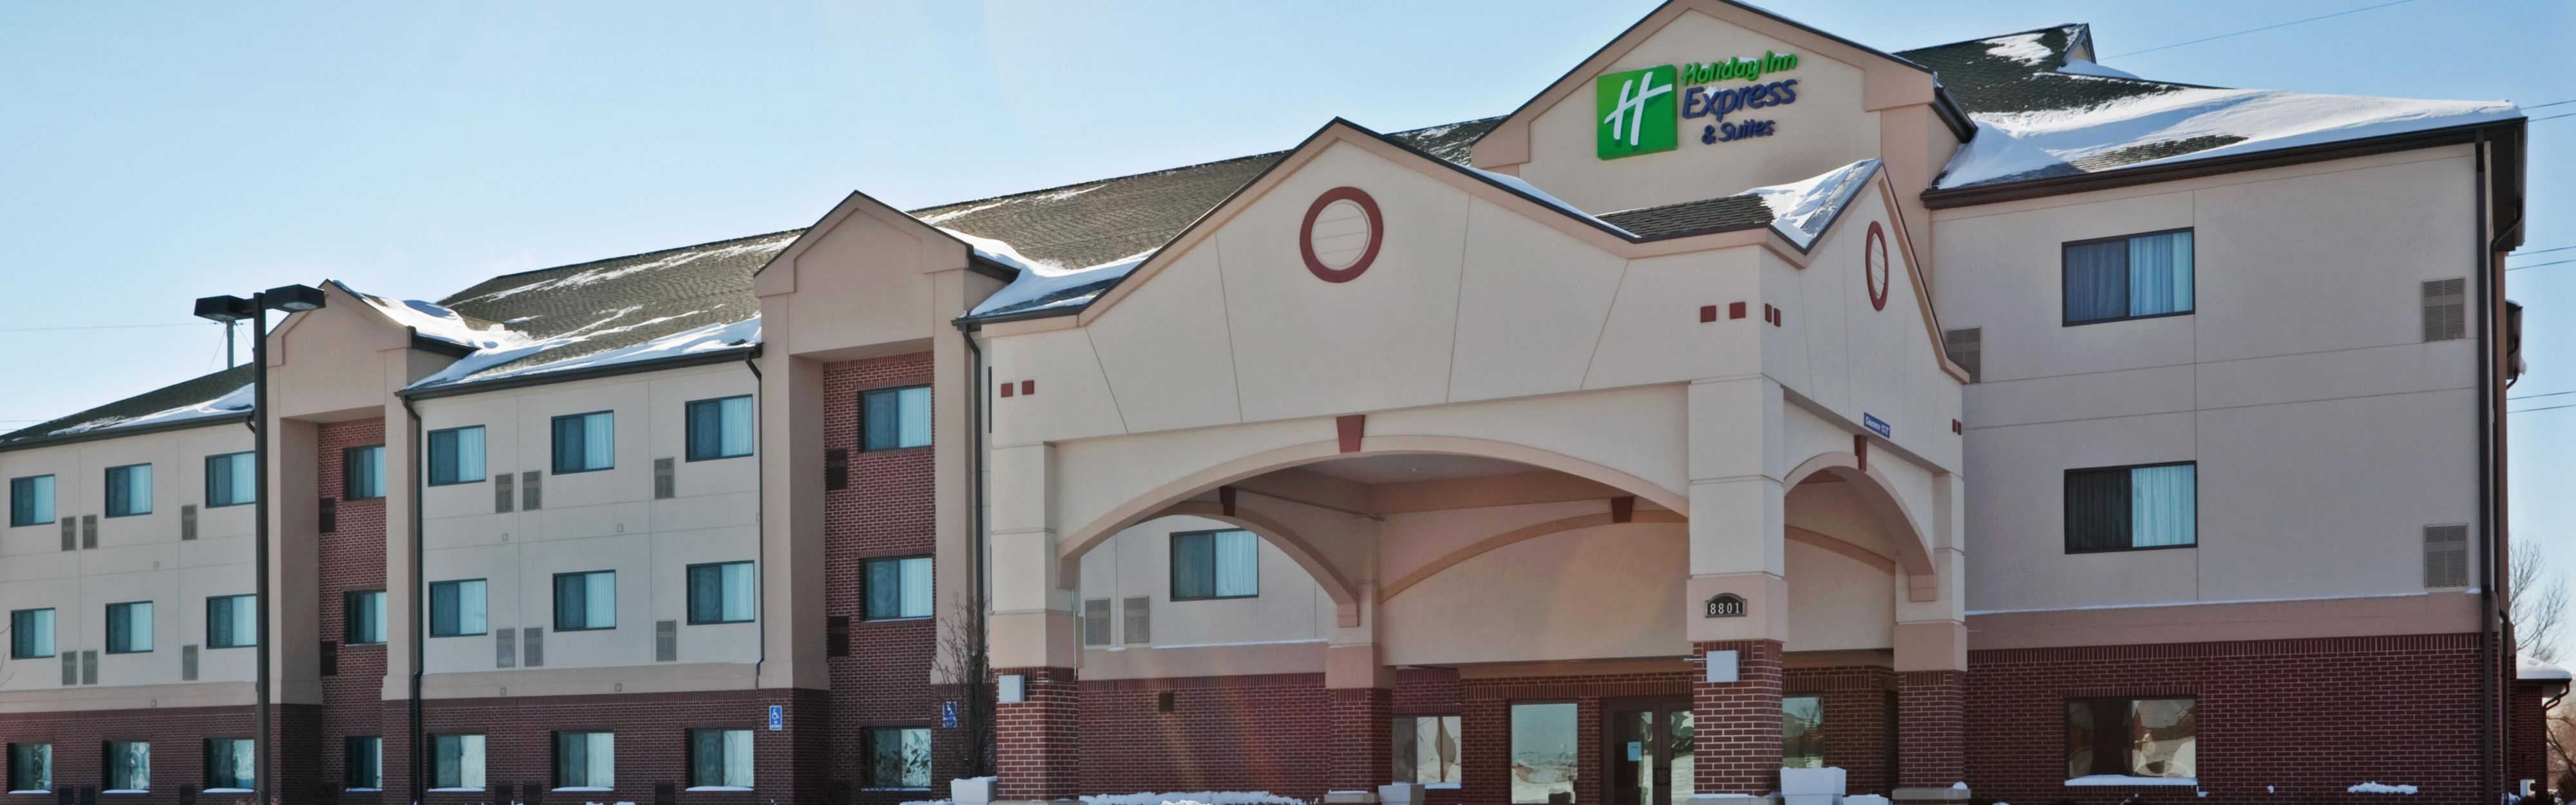 Holiday Inn Express Lincoln South In Lincoln Ne 68526